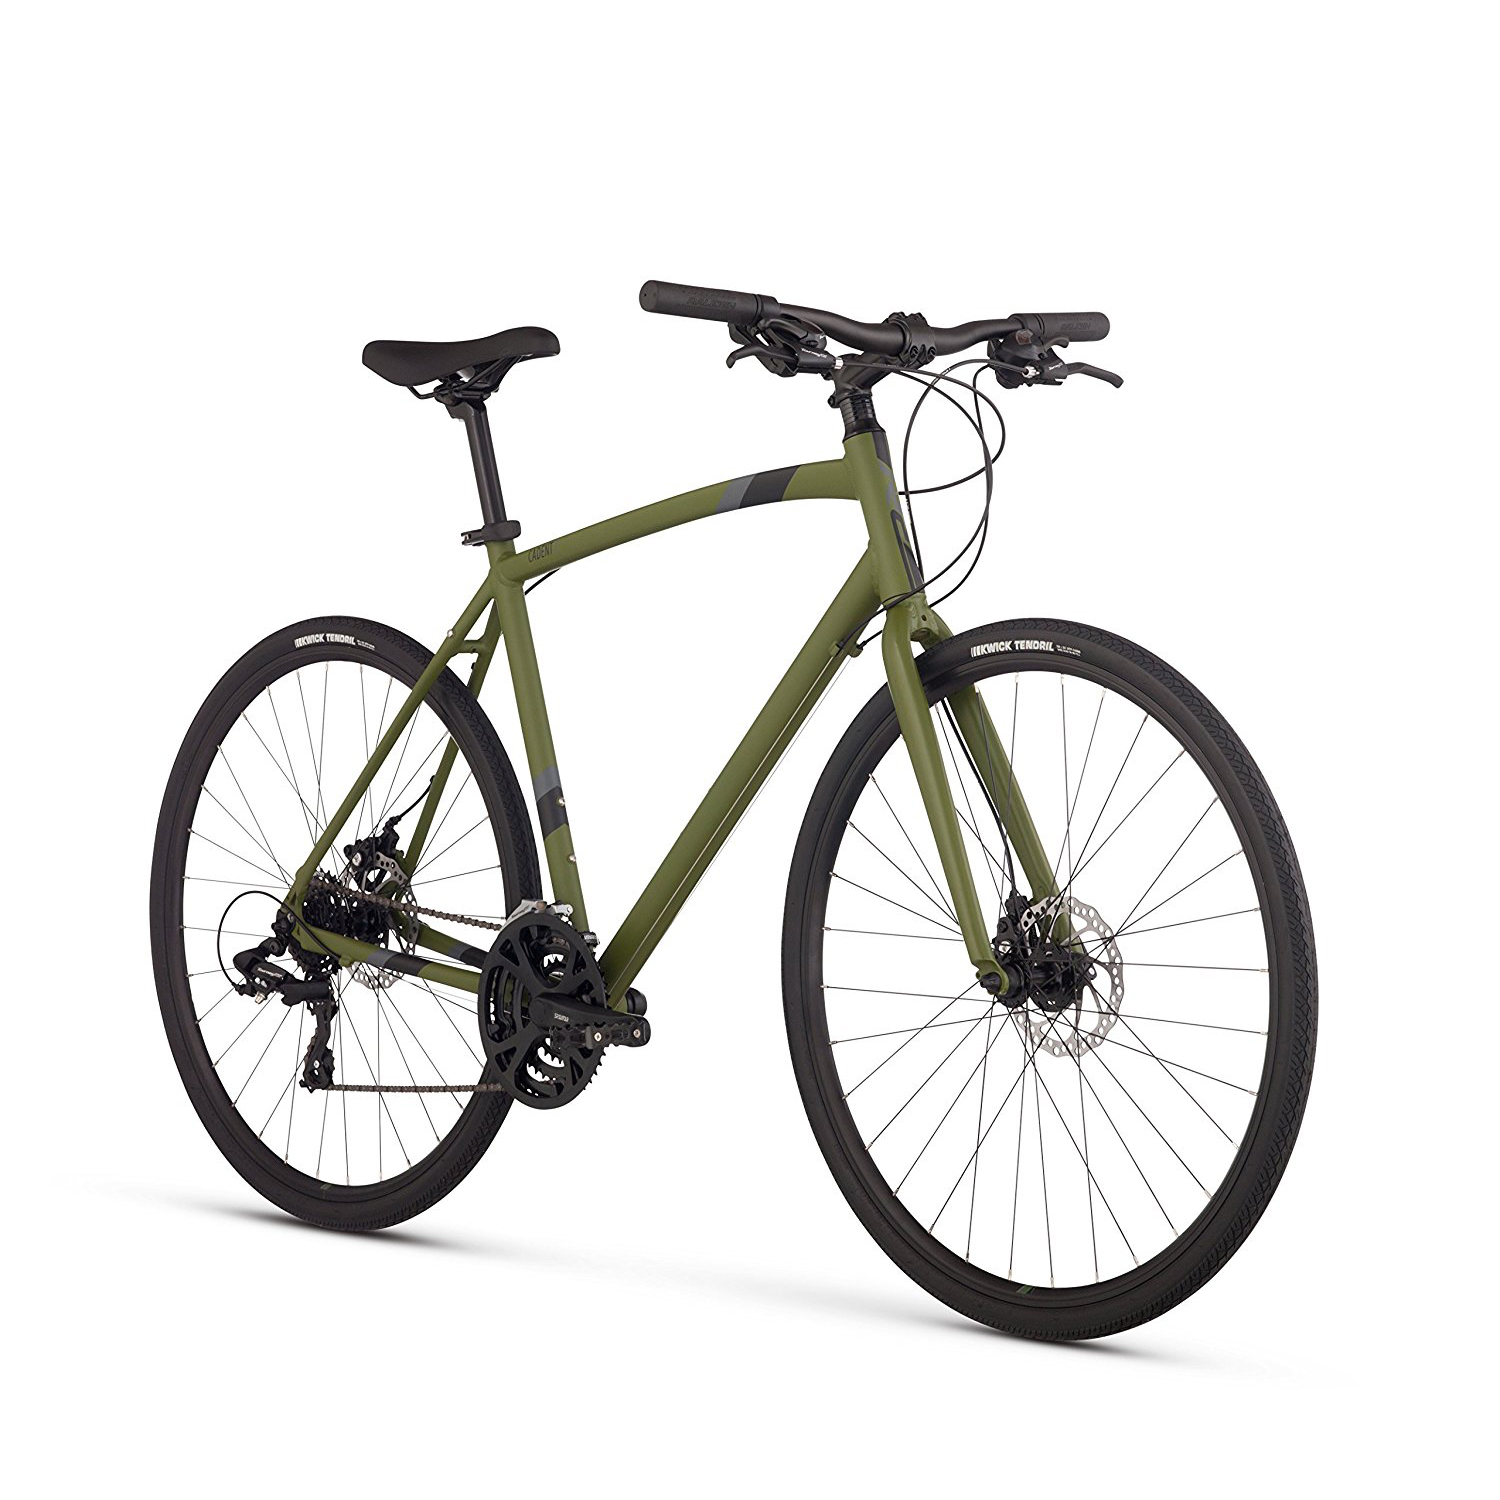 Raleigh Cadent 2 Urban Fitness Bike